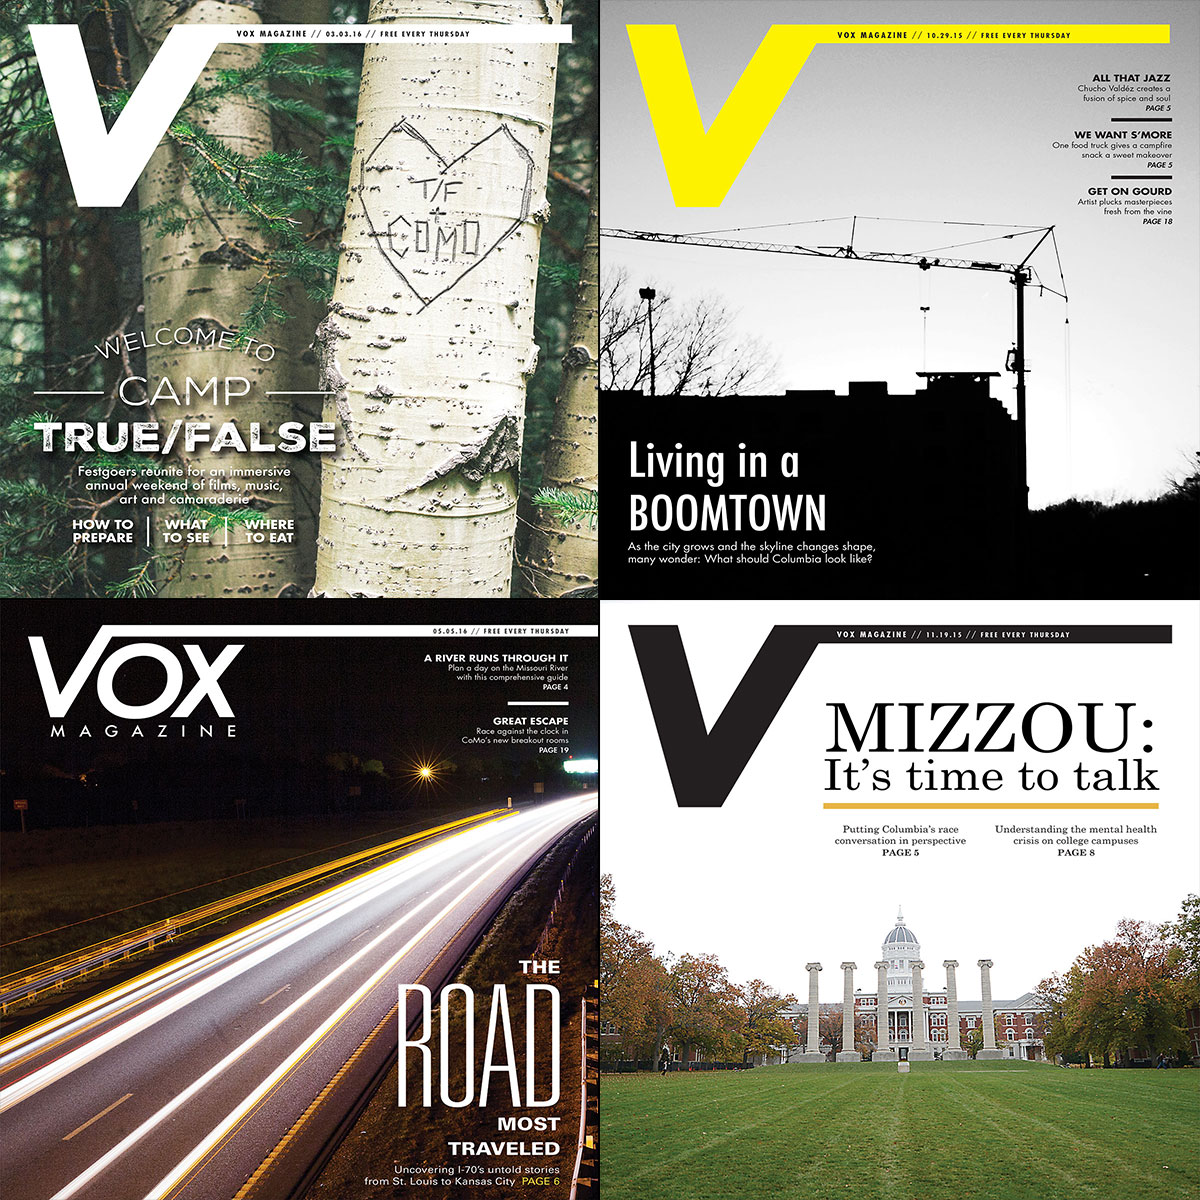 Vox Magazine Covers